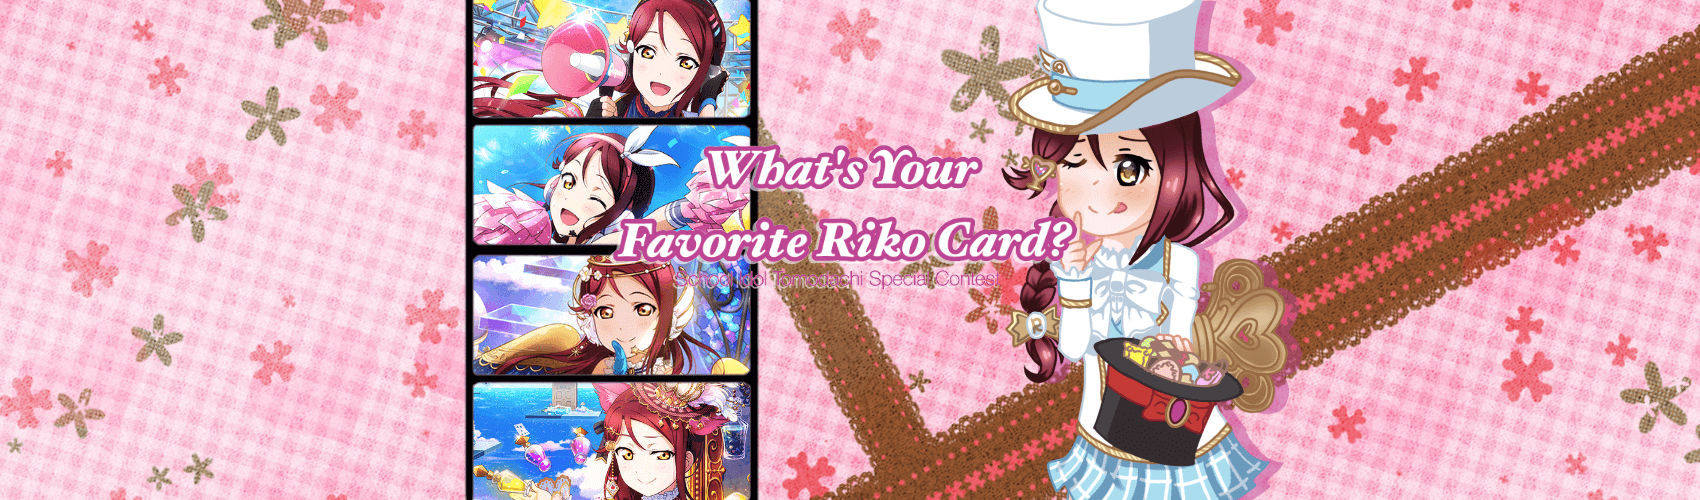 What's your favorite Riko card? 2017 ed.